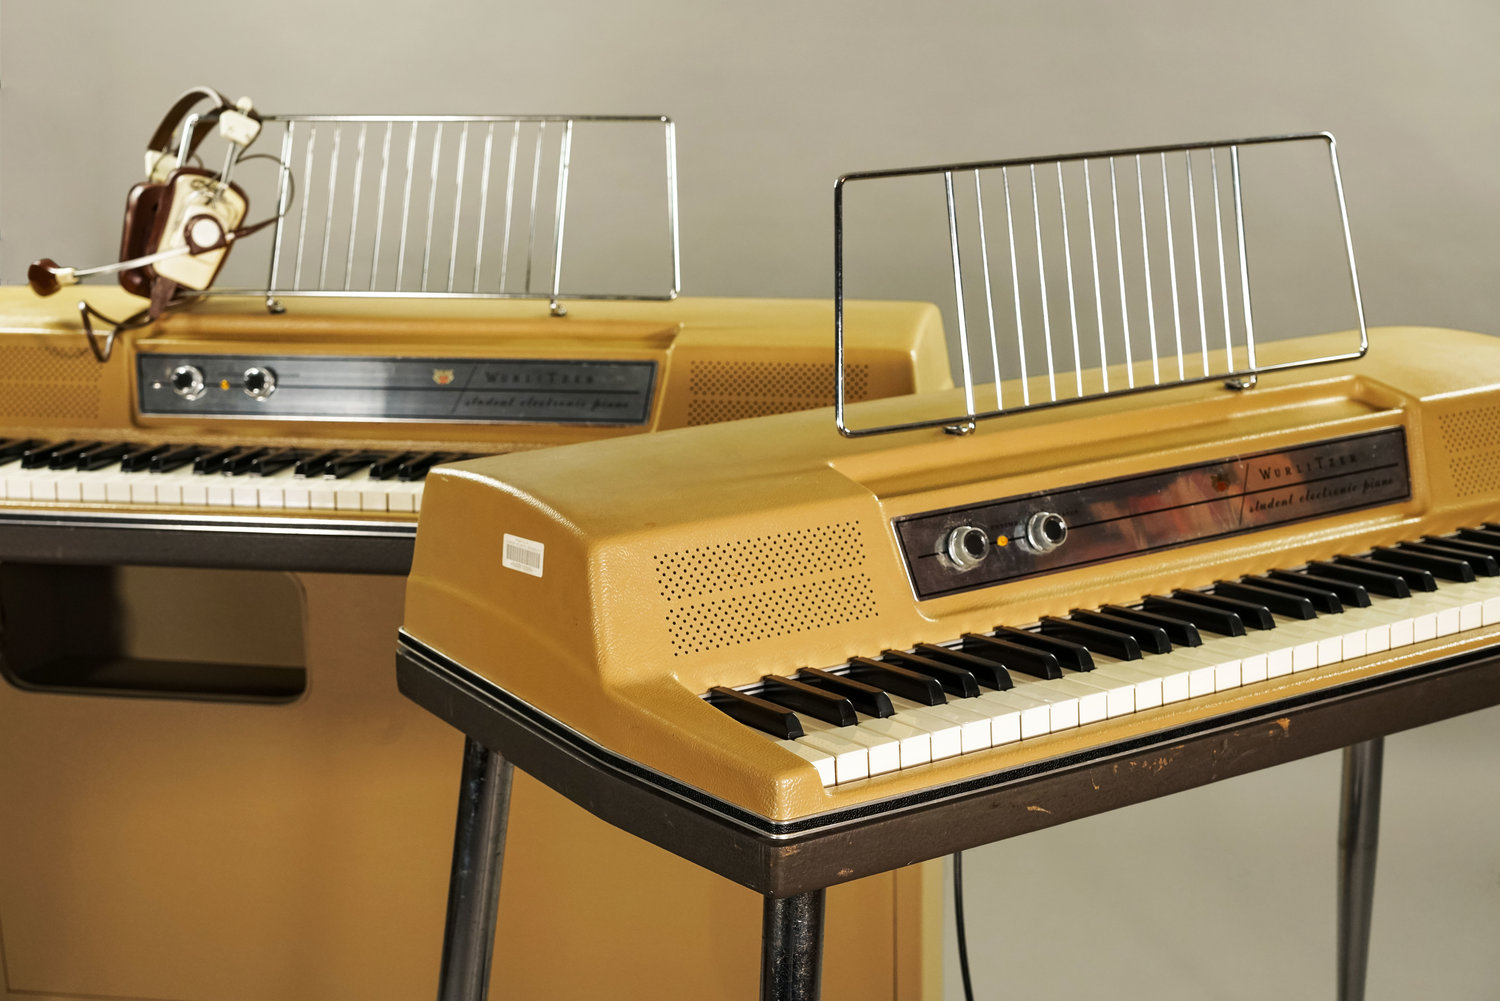 What is the Difference Between a Wurlitzer 200 and 200a?